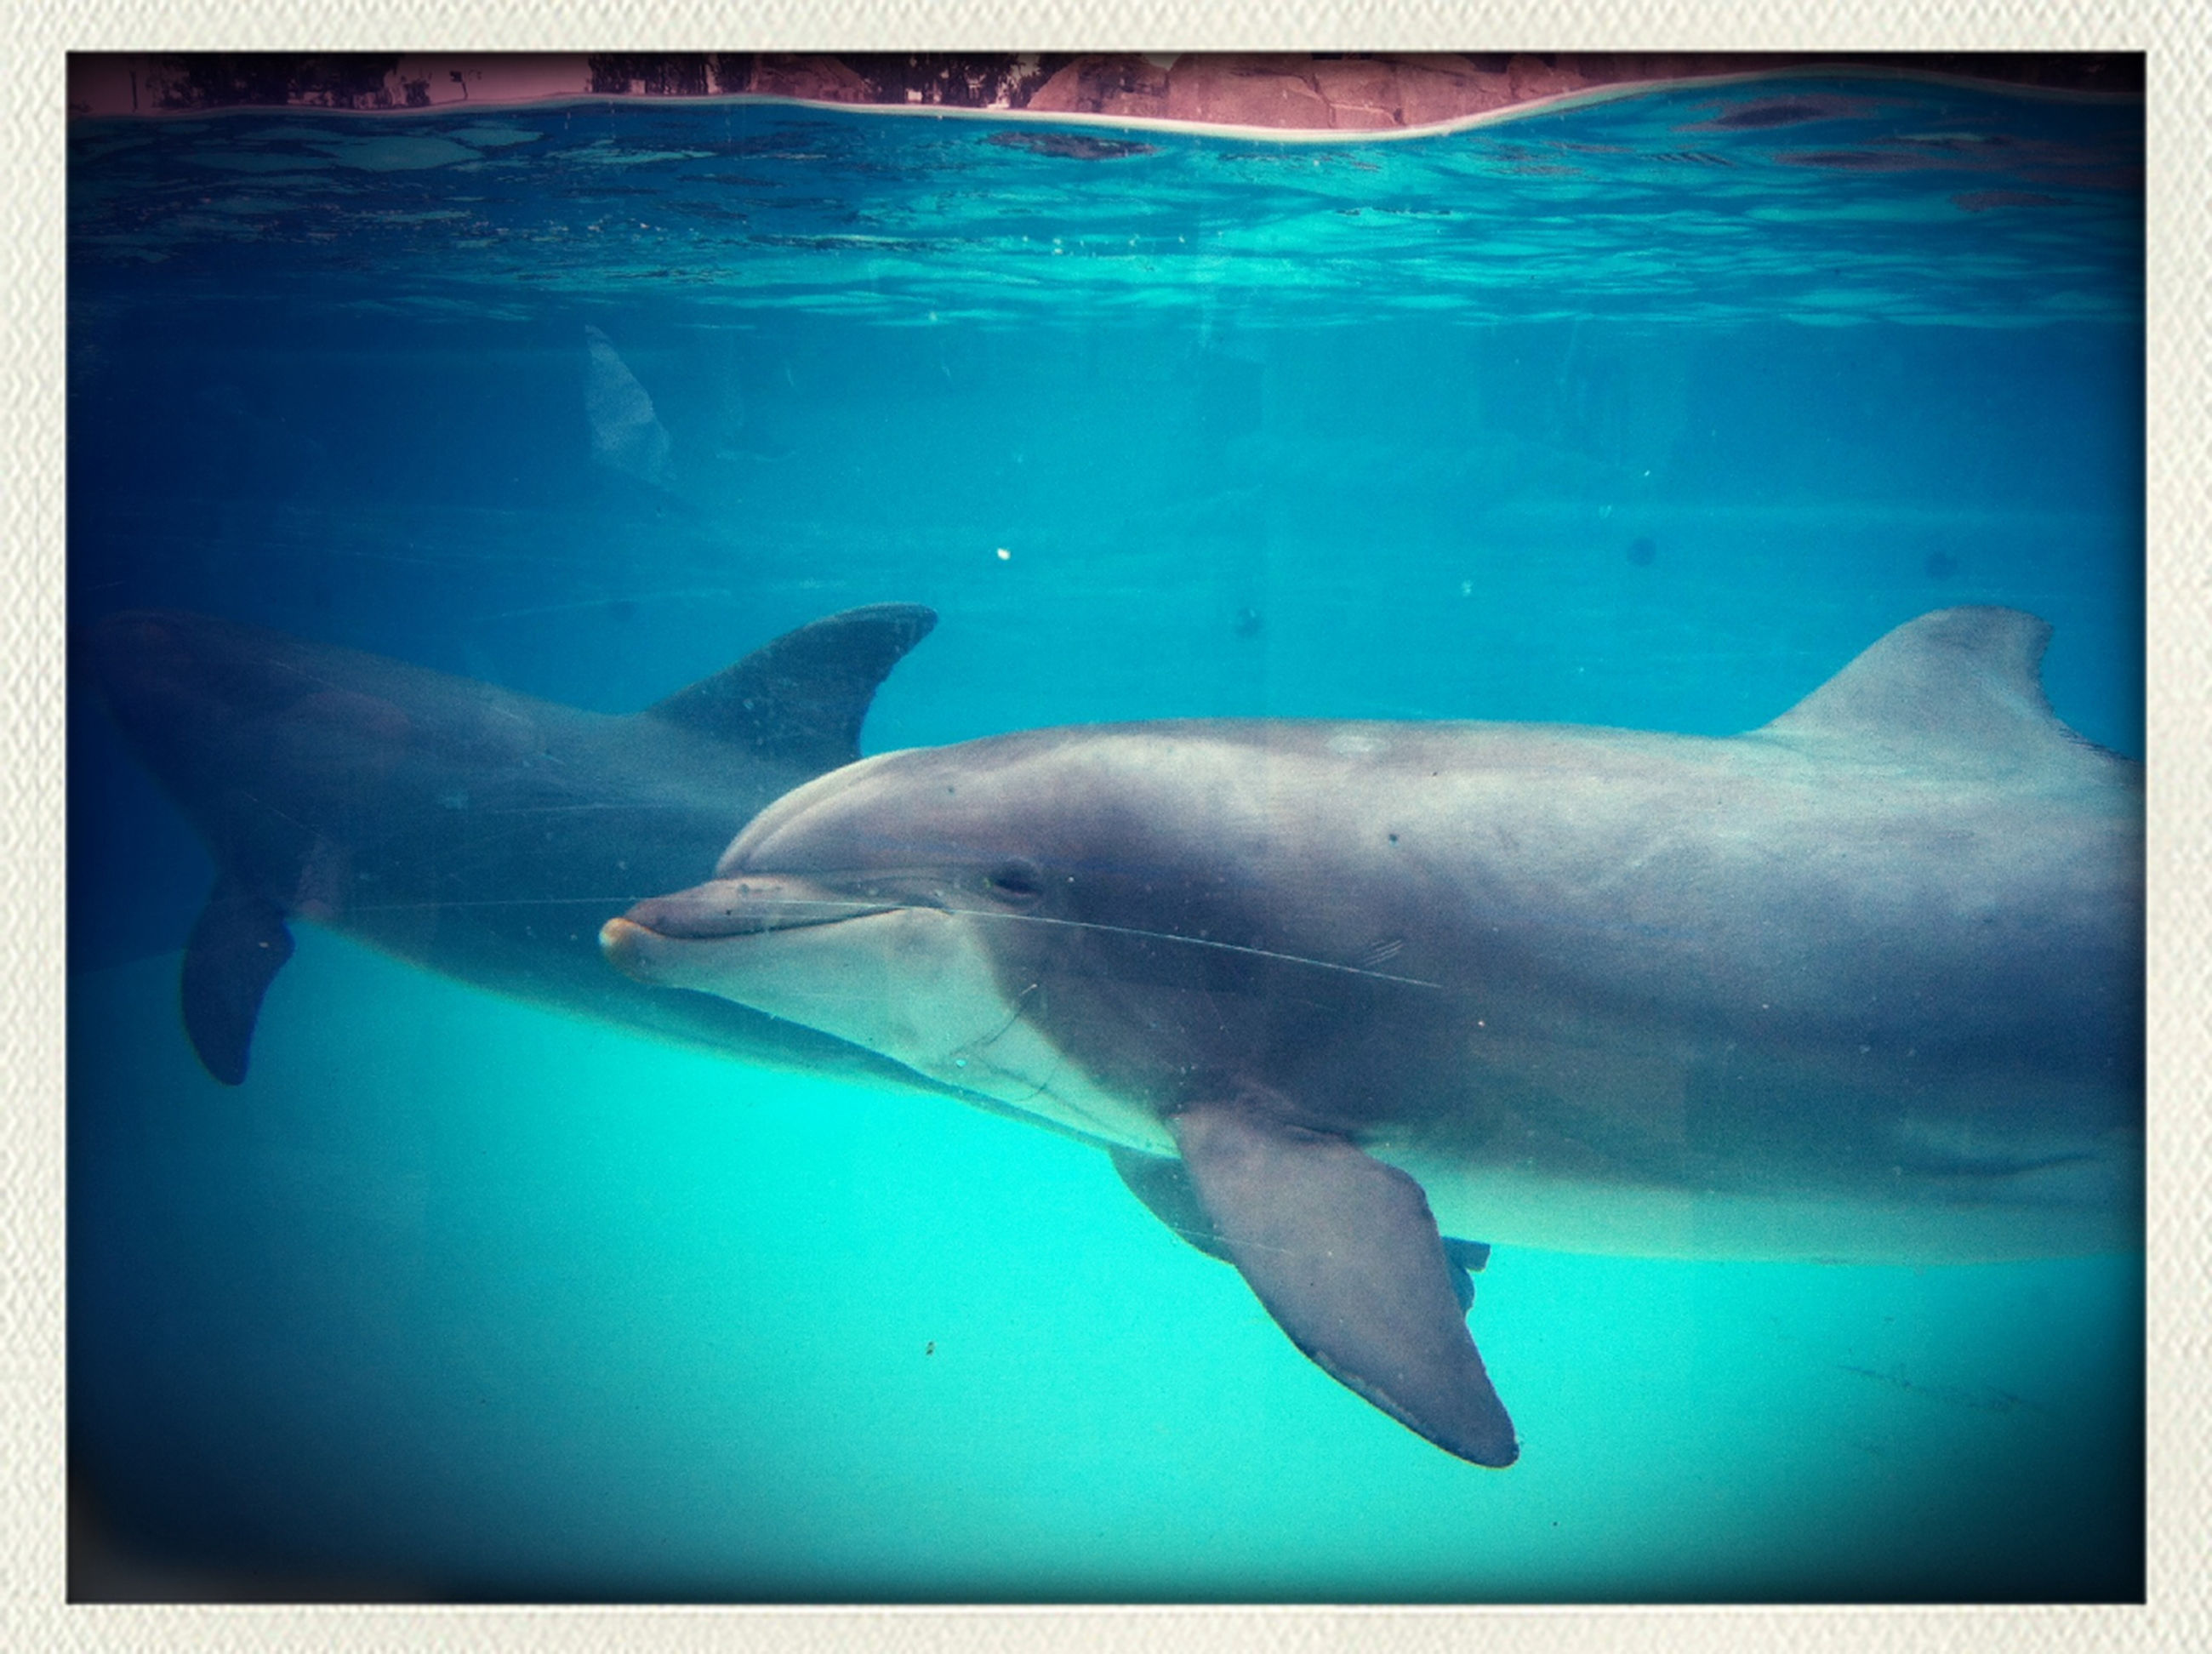 animal themes, swimming, underwater, water, animals in the wild, fish, sea life, wildlife, one animal, sea, blue, undersea, aquarium, dolphin, nature, zoology, aquatic, full length, animals in captivity, auto post production filter